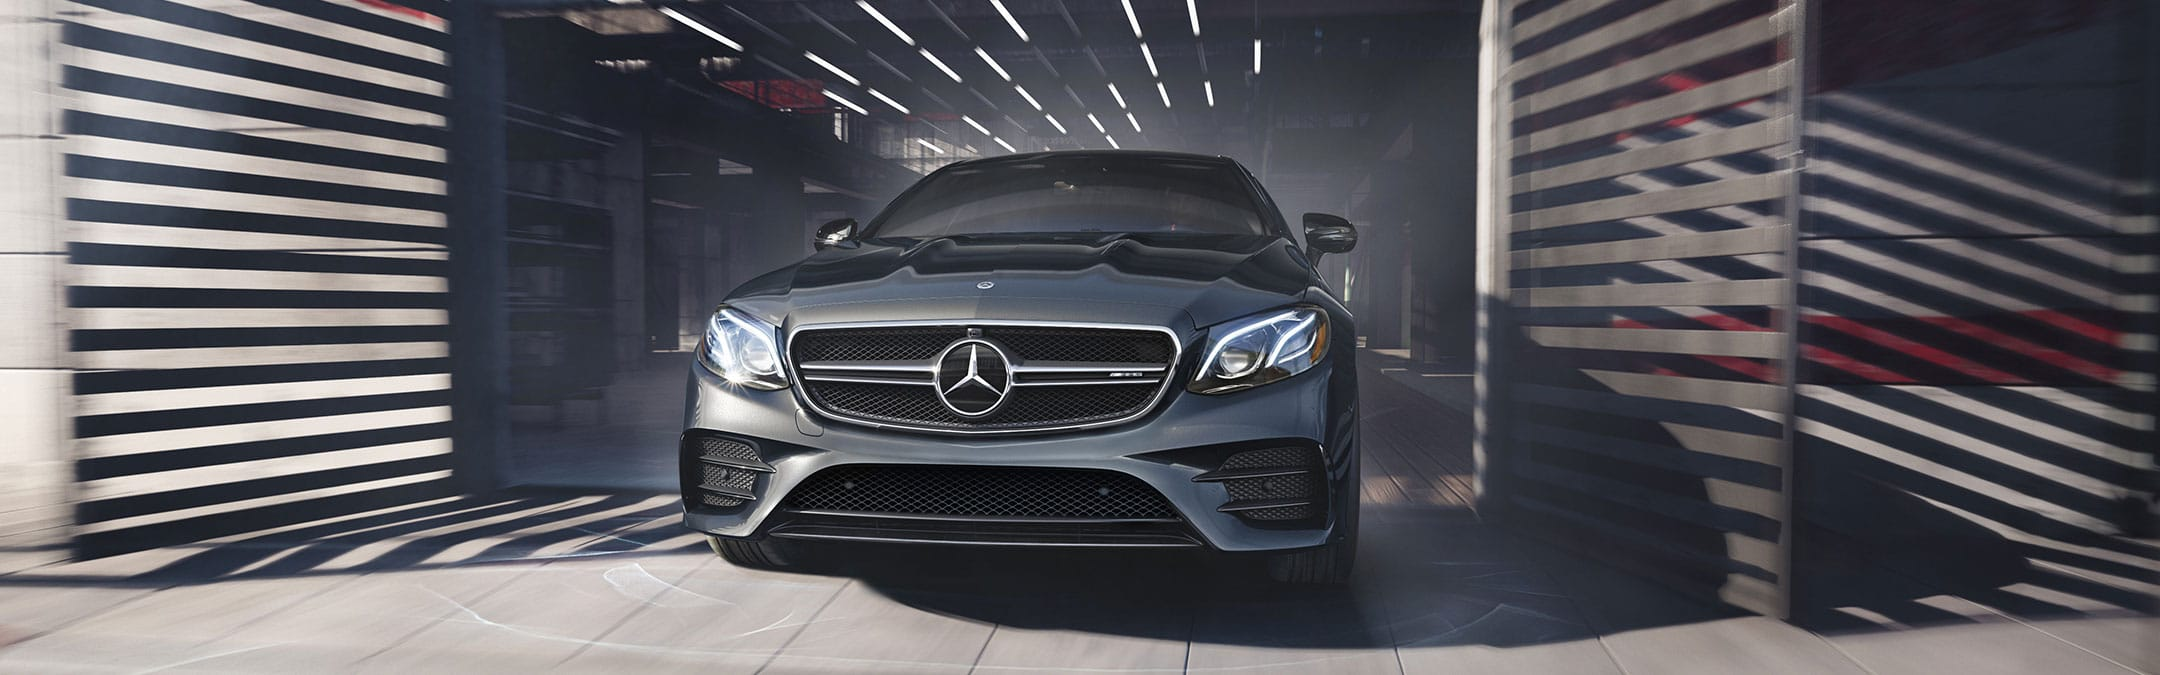 2019 Mercedes-AMG E-Class Coupe